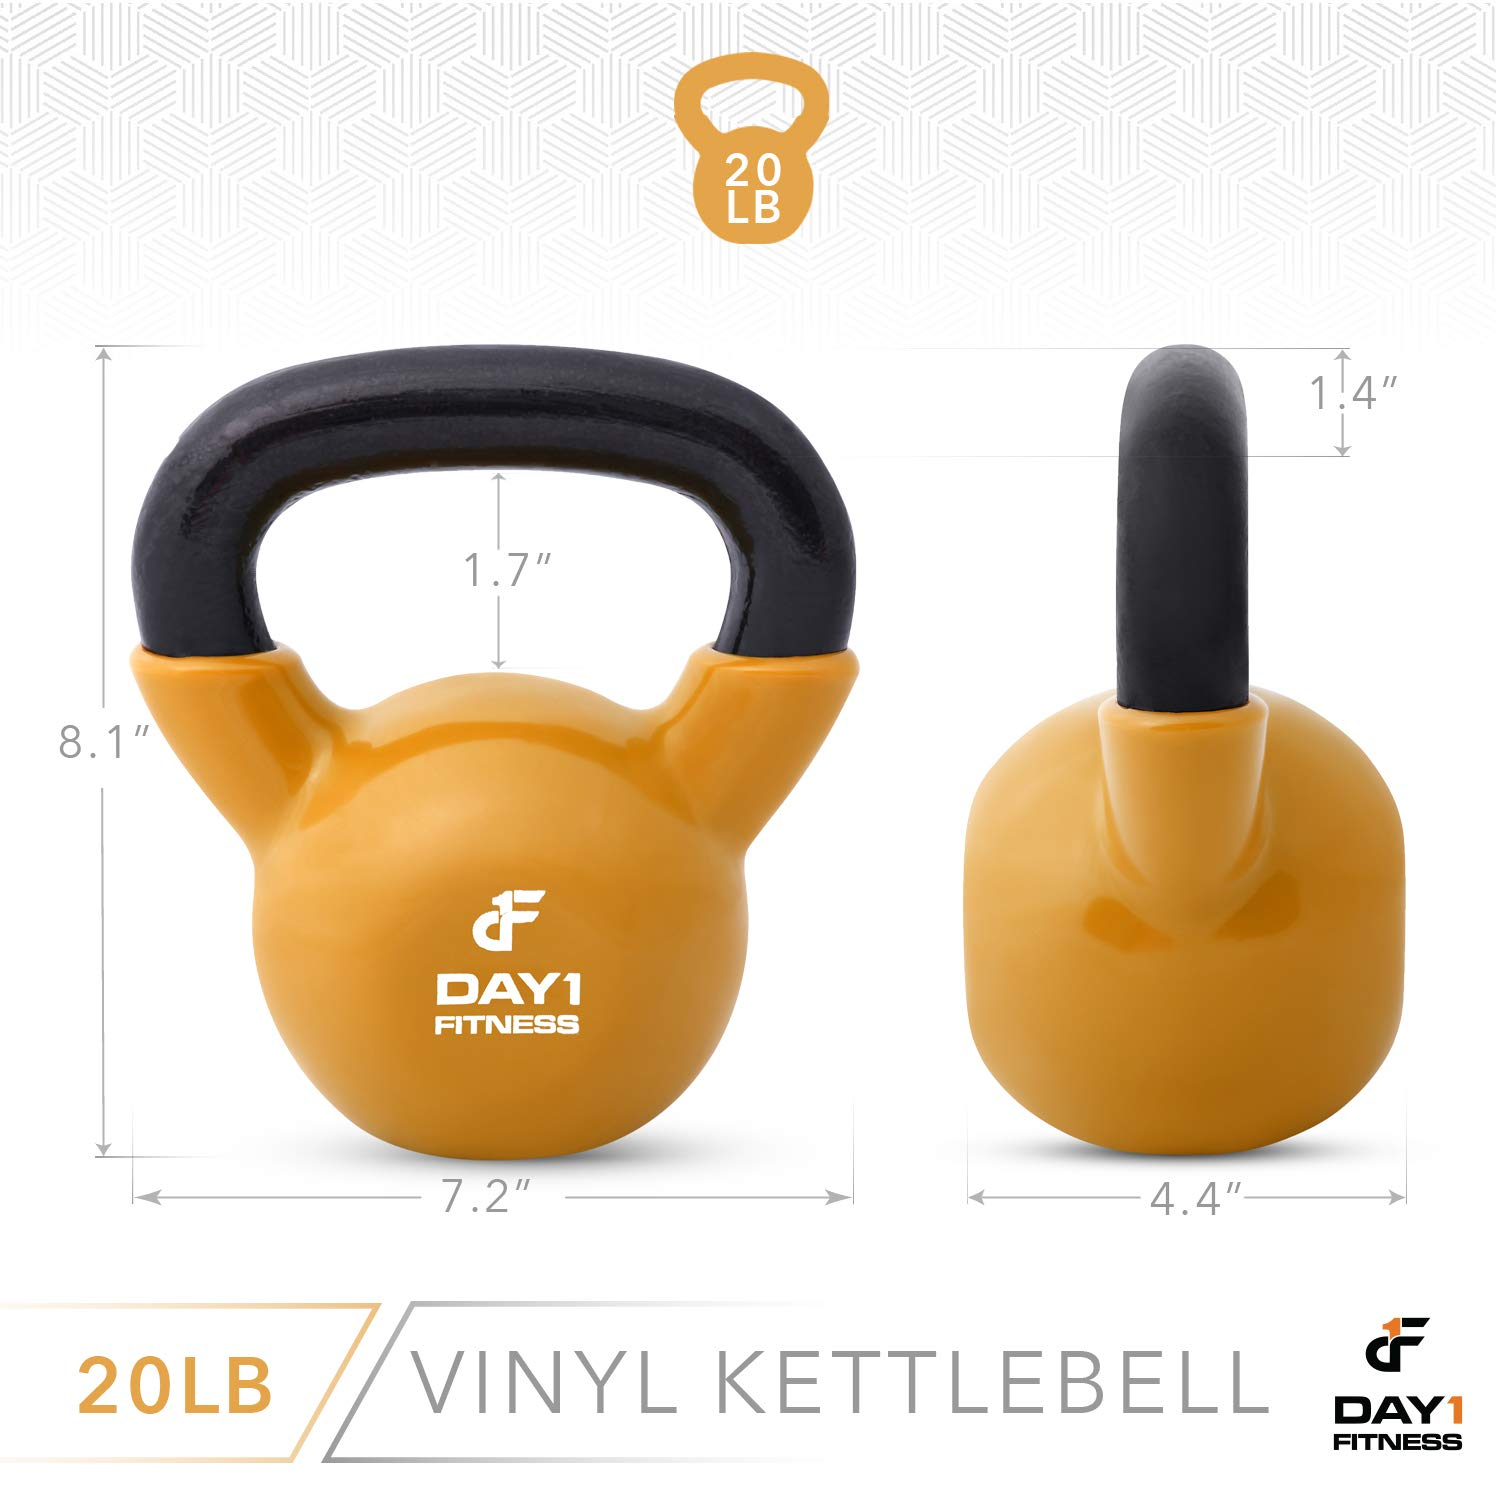 Day 1 Fitness Kettlebell Weights Vinyl Coated Iron 20 Pounds - Coated for Floor and Equipment Protection, Noise Reduction - Free Weights for Ballistic, Core, Weight Training by Day 1 Fitness (Image #3)